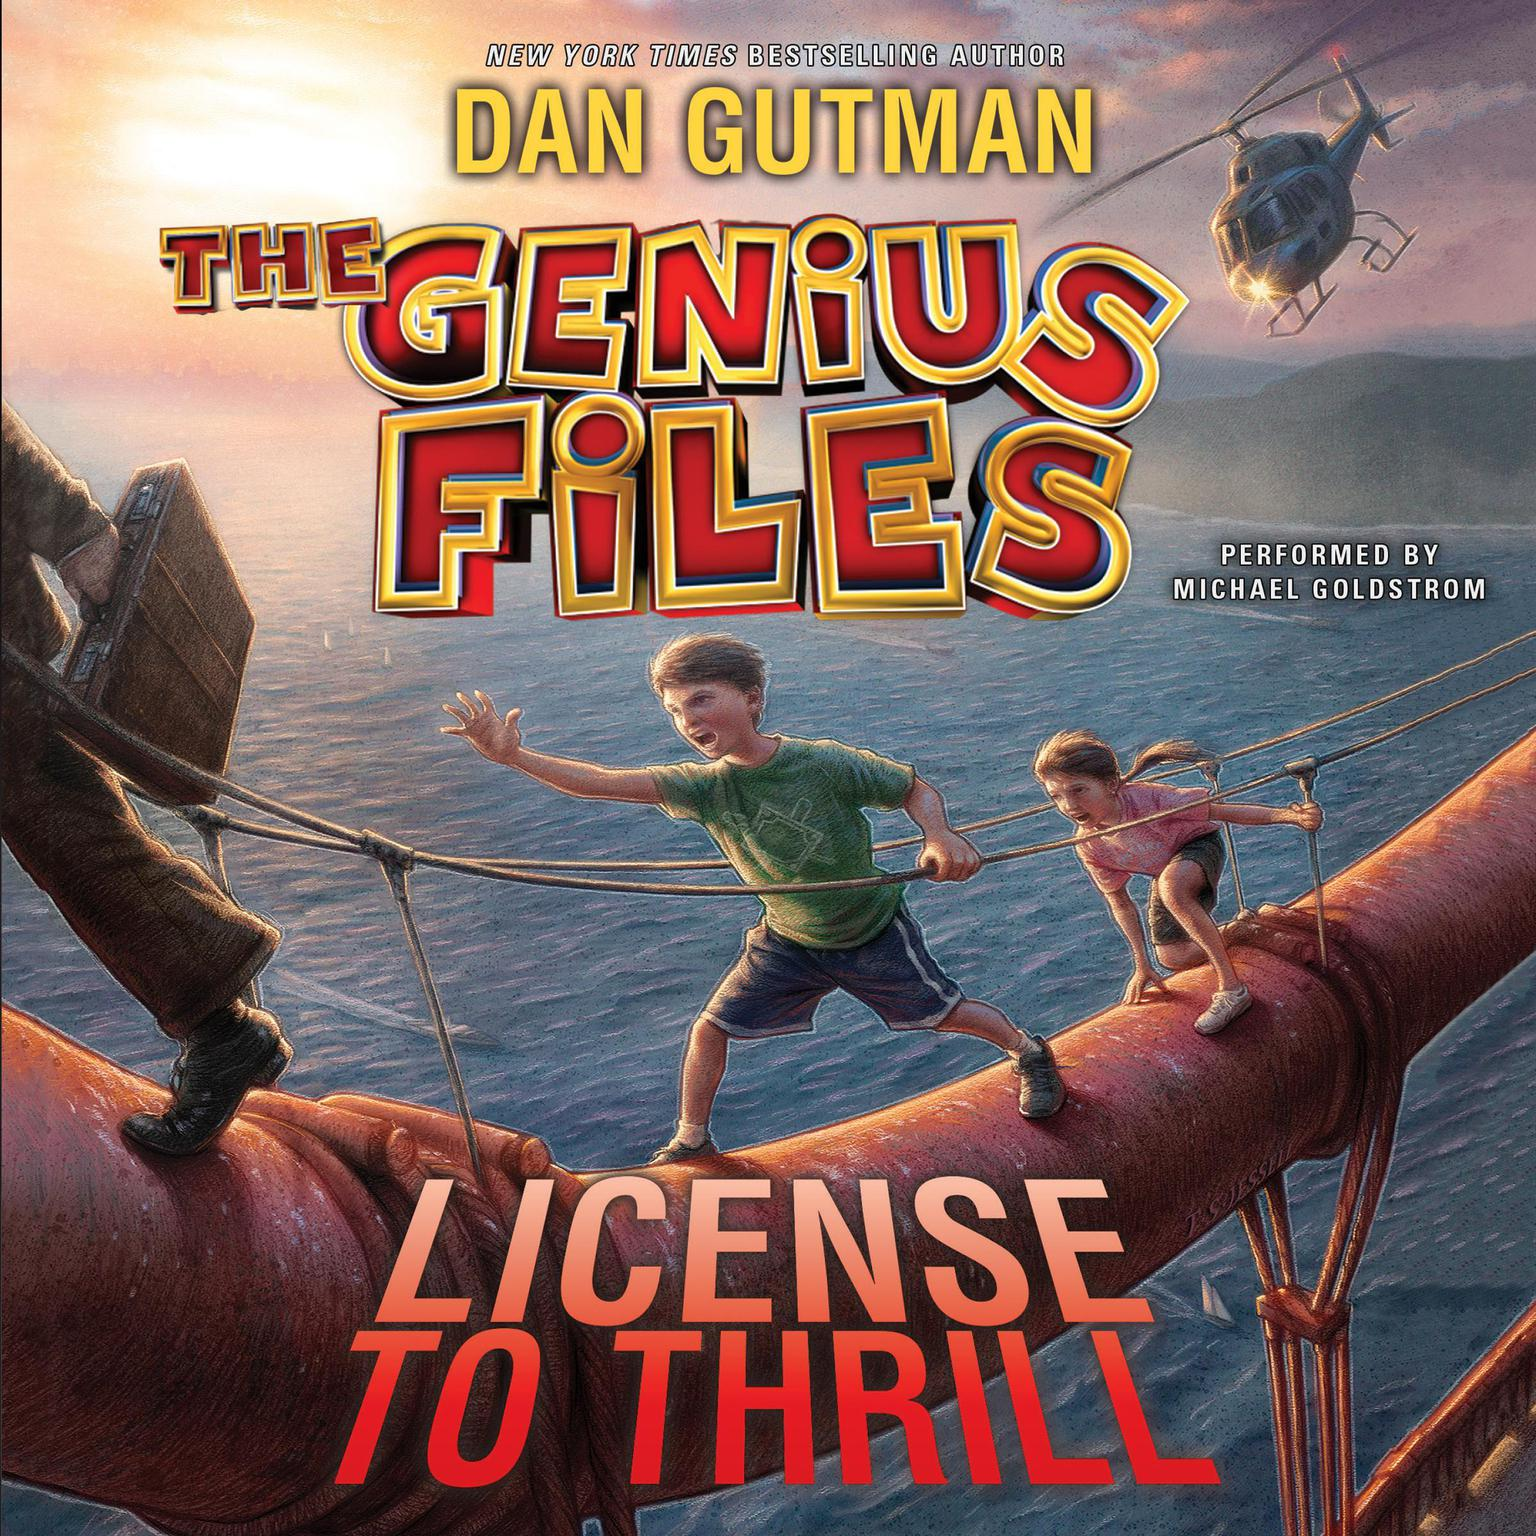 Printable The Genius Files #5: License to Thrill Audiobook Cover Art